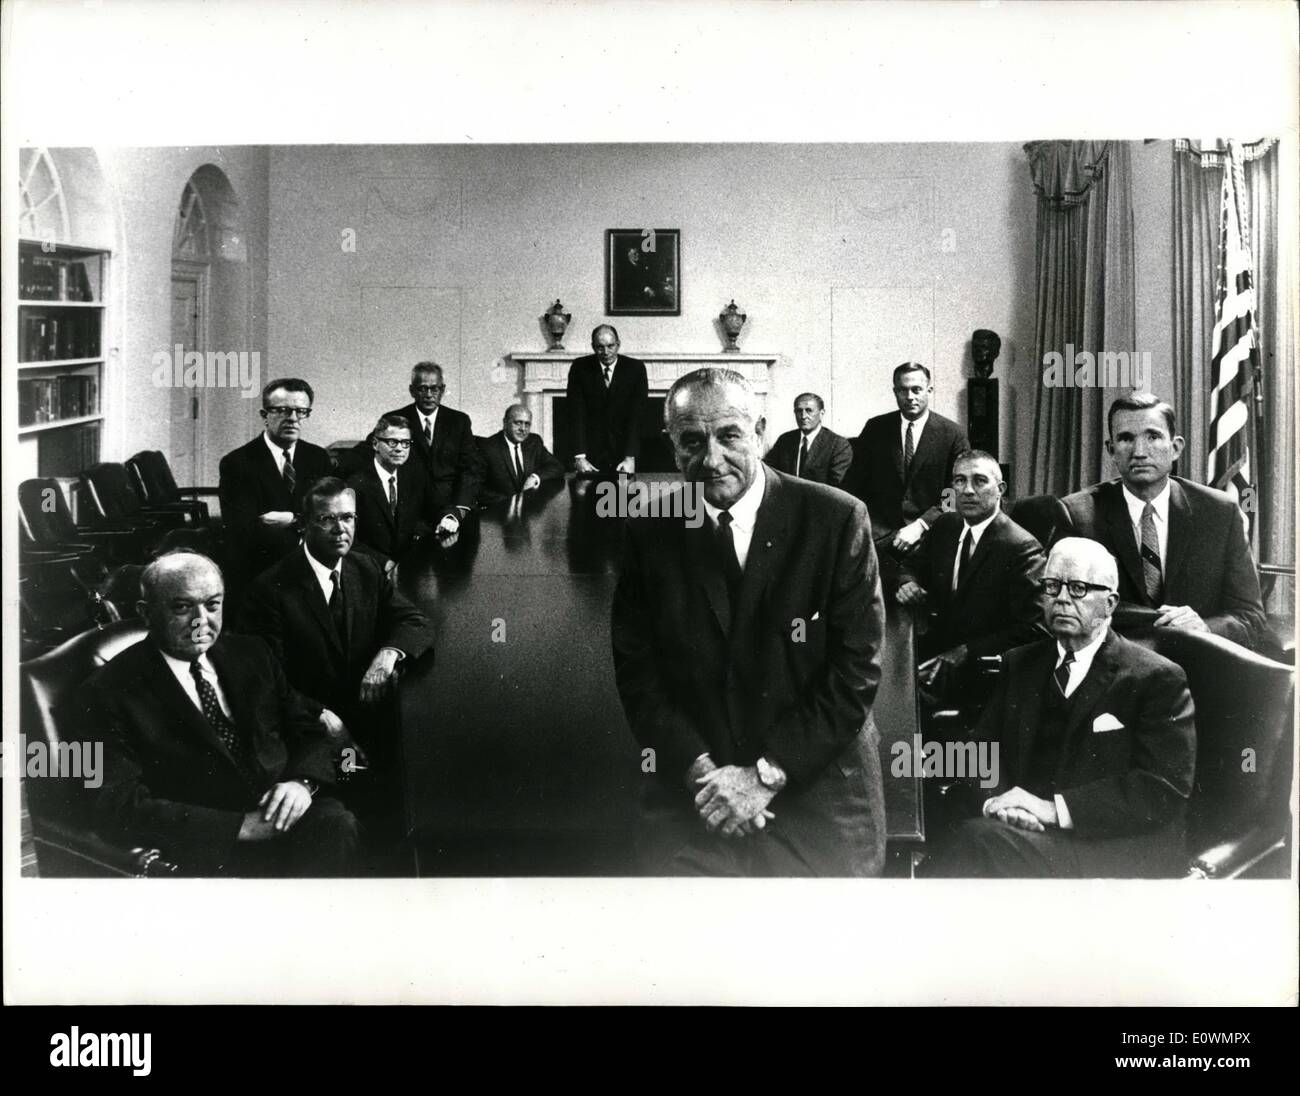 Aug. 08, 1963 - The President and his Cabinet: This new picture of President Johnson's cabinet, made recently at the White House, Washington, shows, clockwise from the Chief Executive; Secretary of State Rusk, Defense Secretary McNamara, Postmaster General O' Berien Agriculture Secretary Freeman, Labor Secretary Wirtz, Hud Secretary Weaver, Transportation Secretary Boyd, Hew Secretary Gardner, Acting Commerce Secretary Helloman, Interior Secretary Udall, Attorney General Clark and Treasury Secretary Fowler. - Stock Image